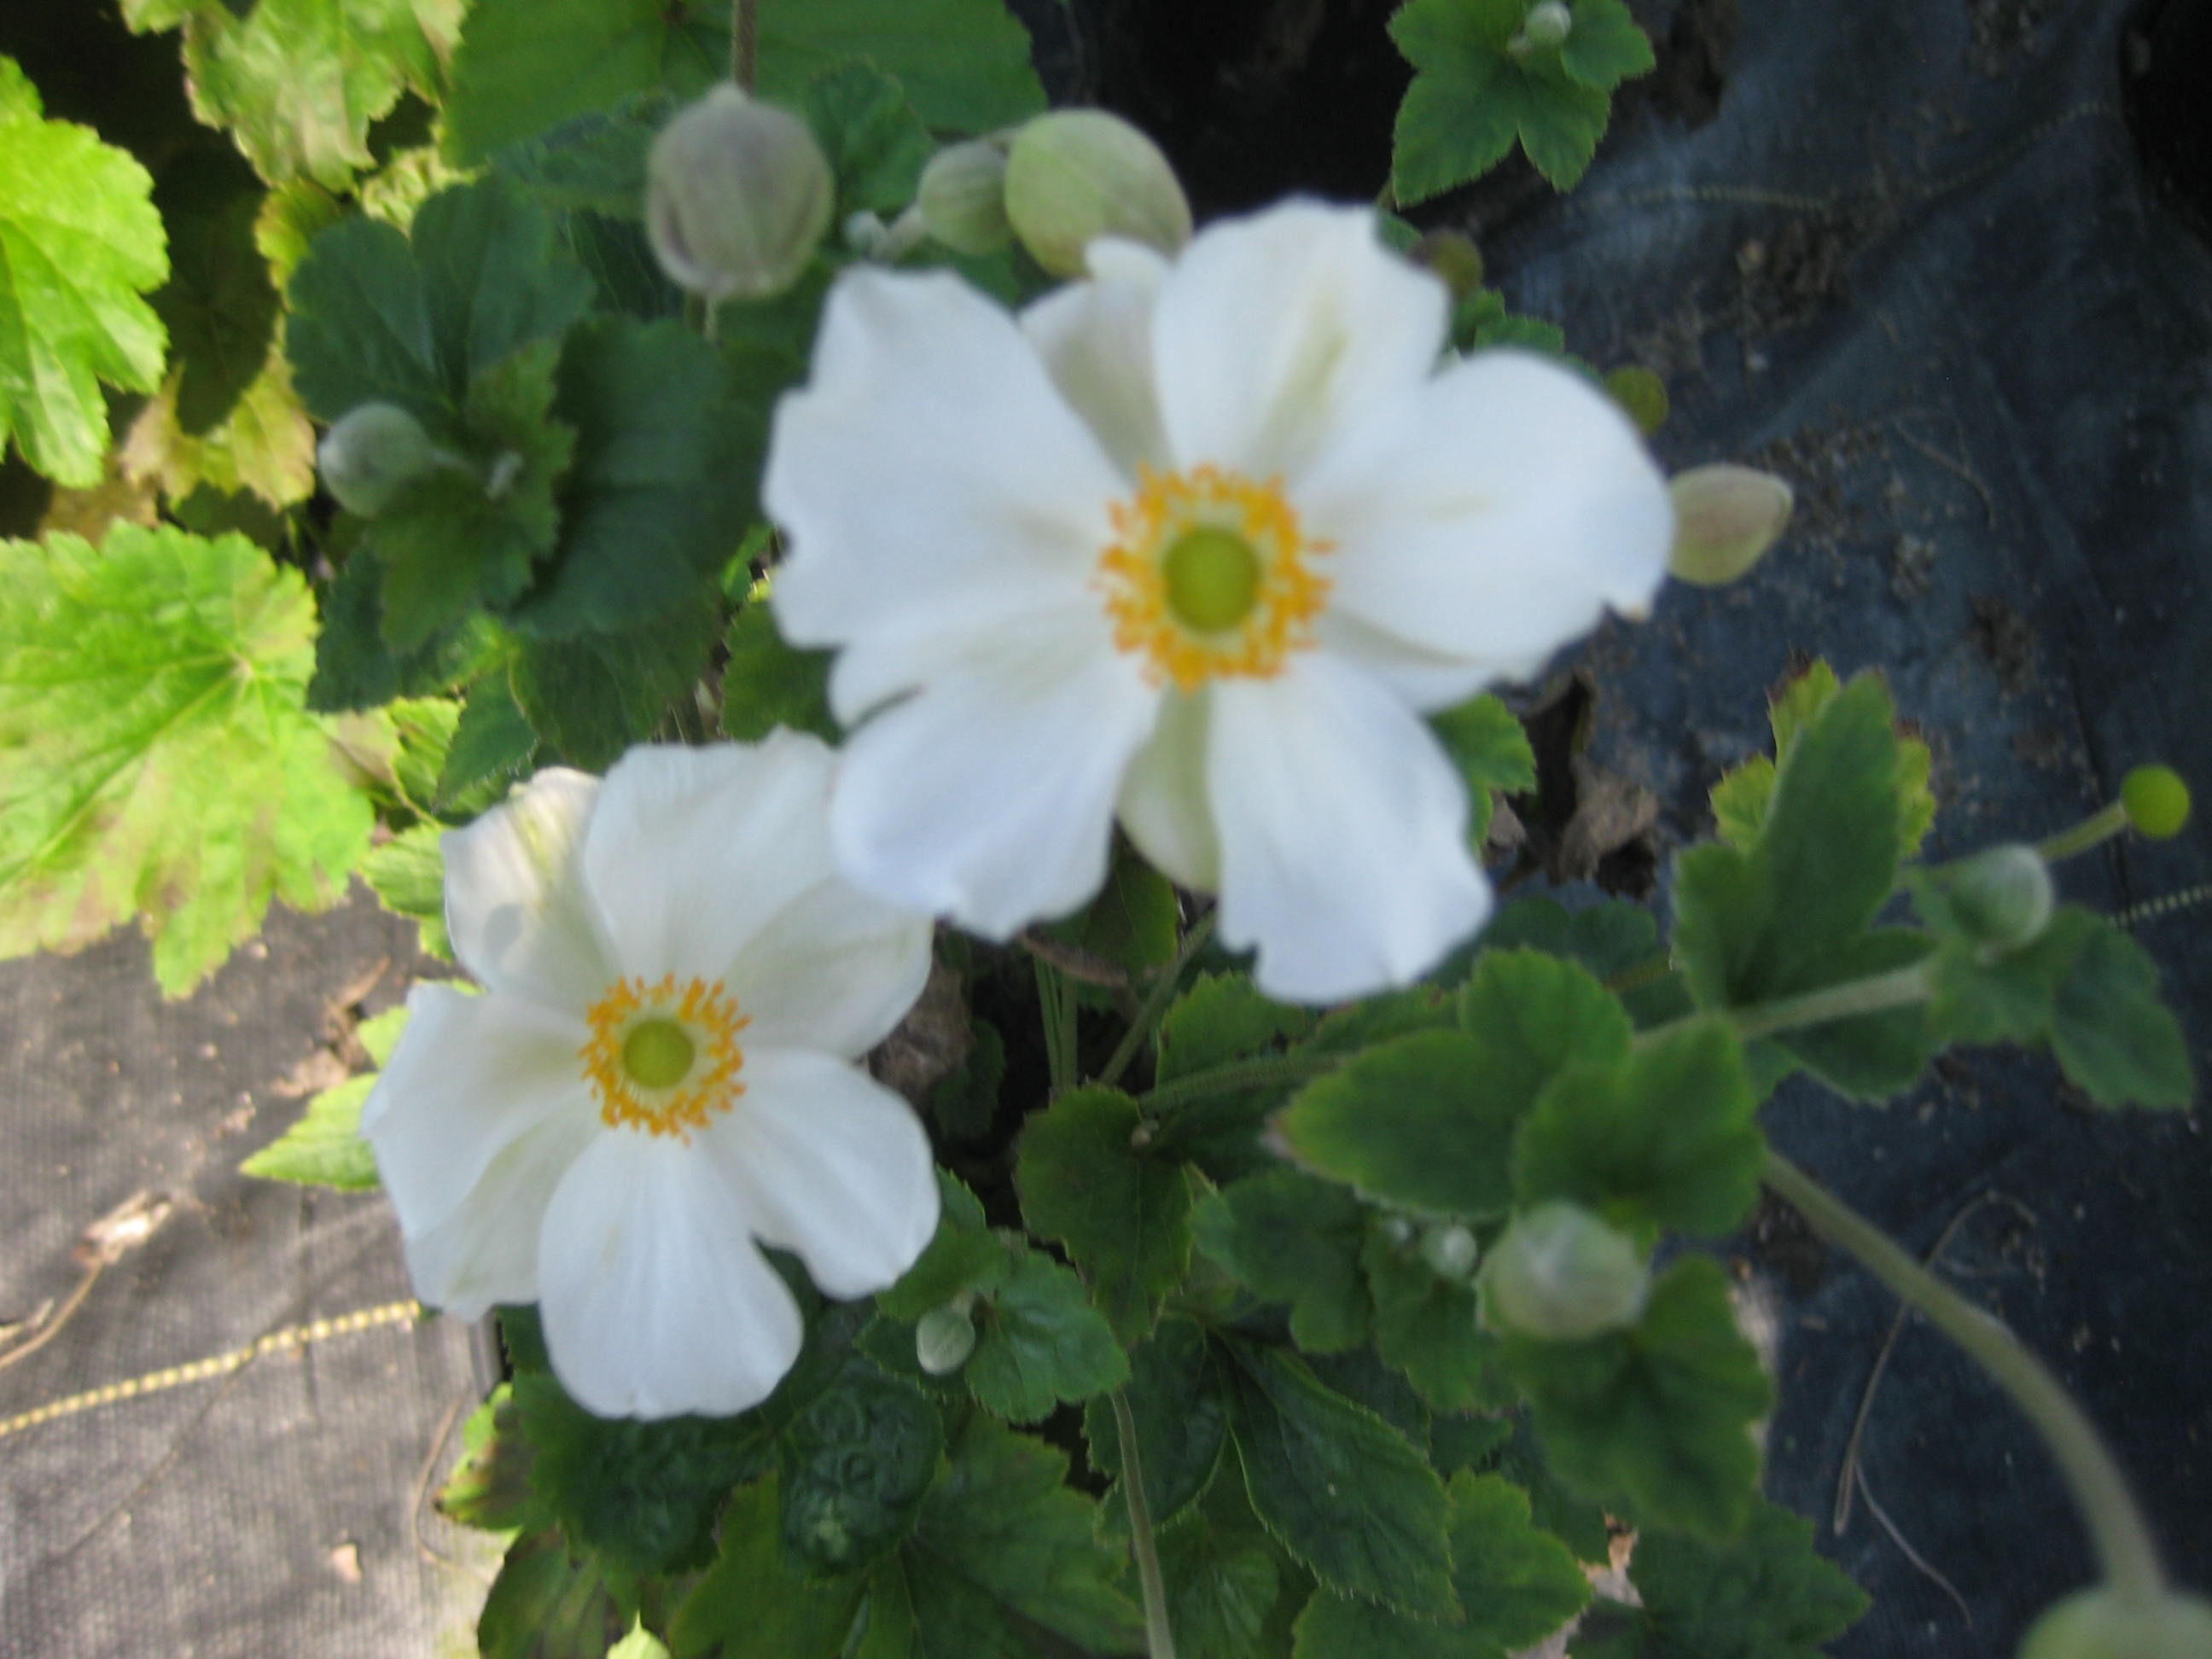 Premier plant solutions anemone h honorine jobert large white flowers with yellow mightylinksfo